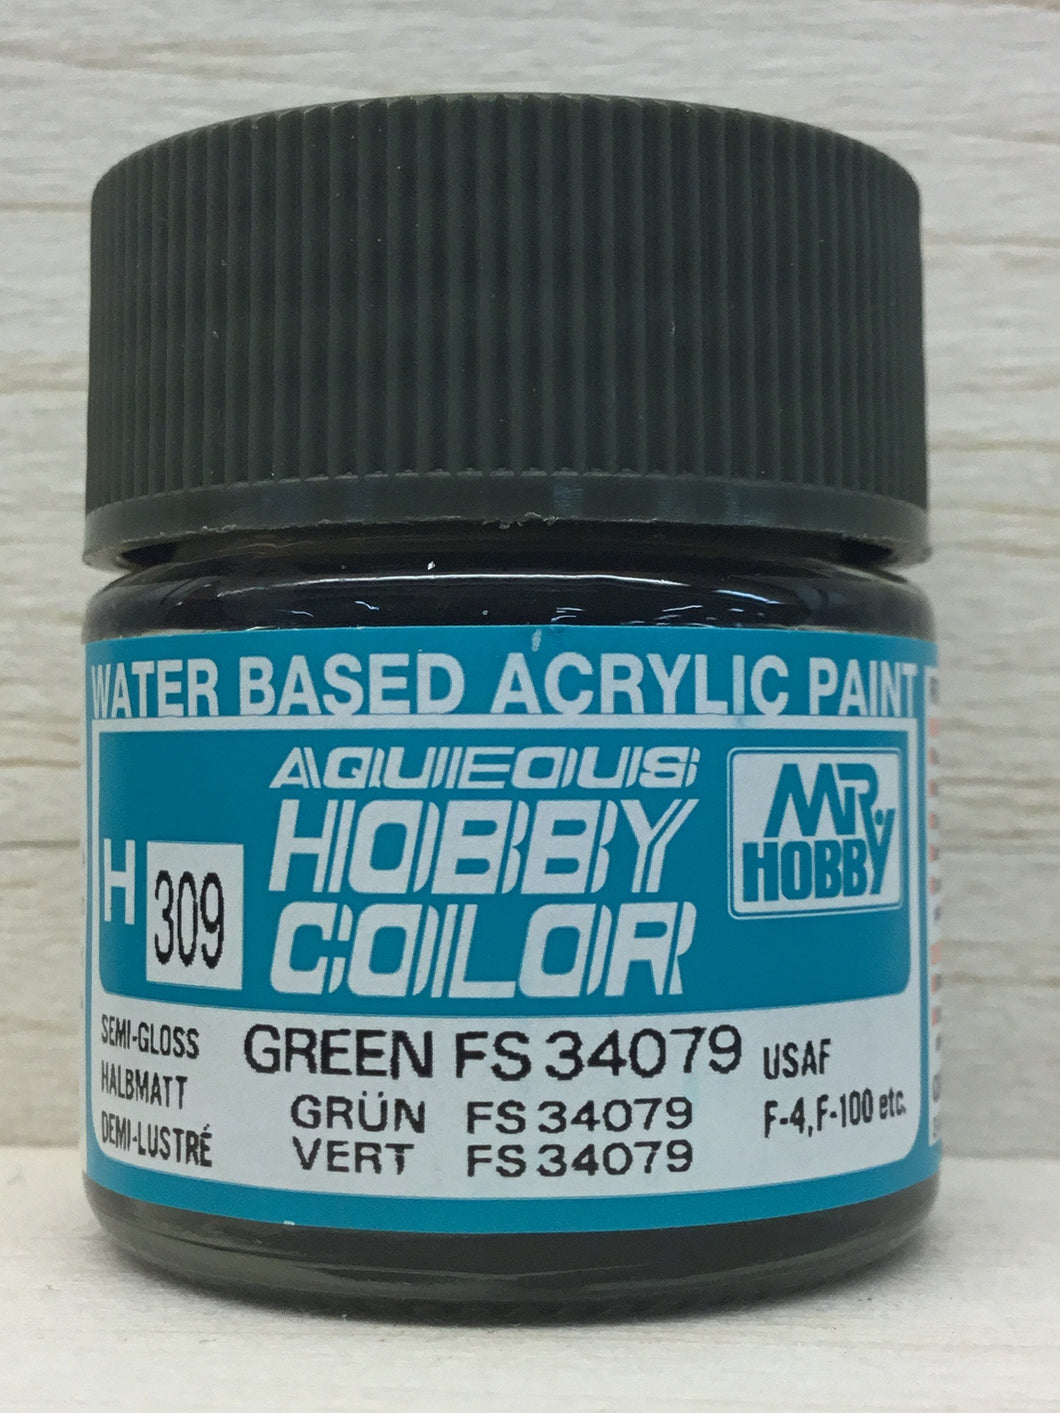 GUNZE MR HOBBY COLOR H309 SEMI GLOSS GREEN FS34079